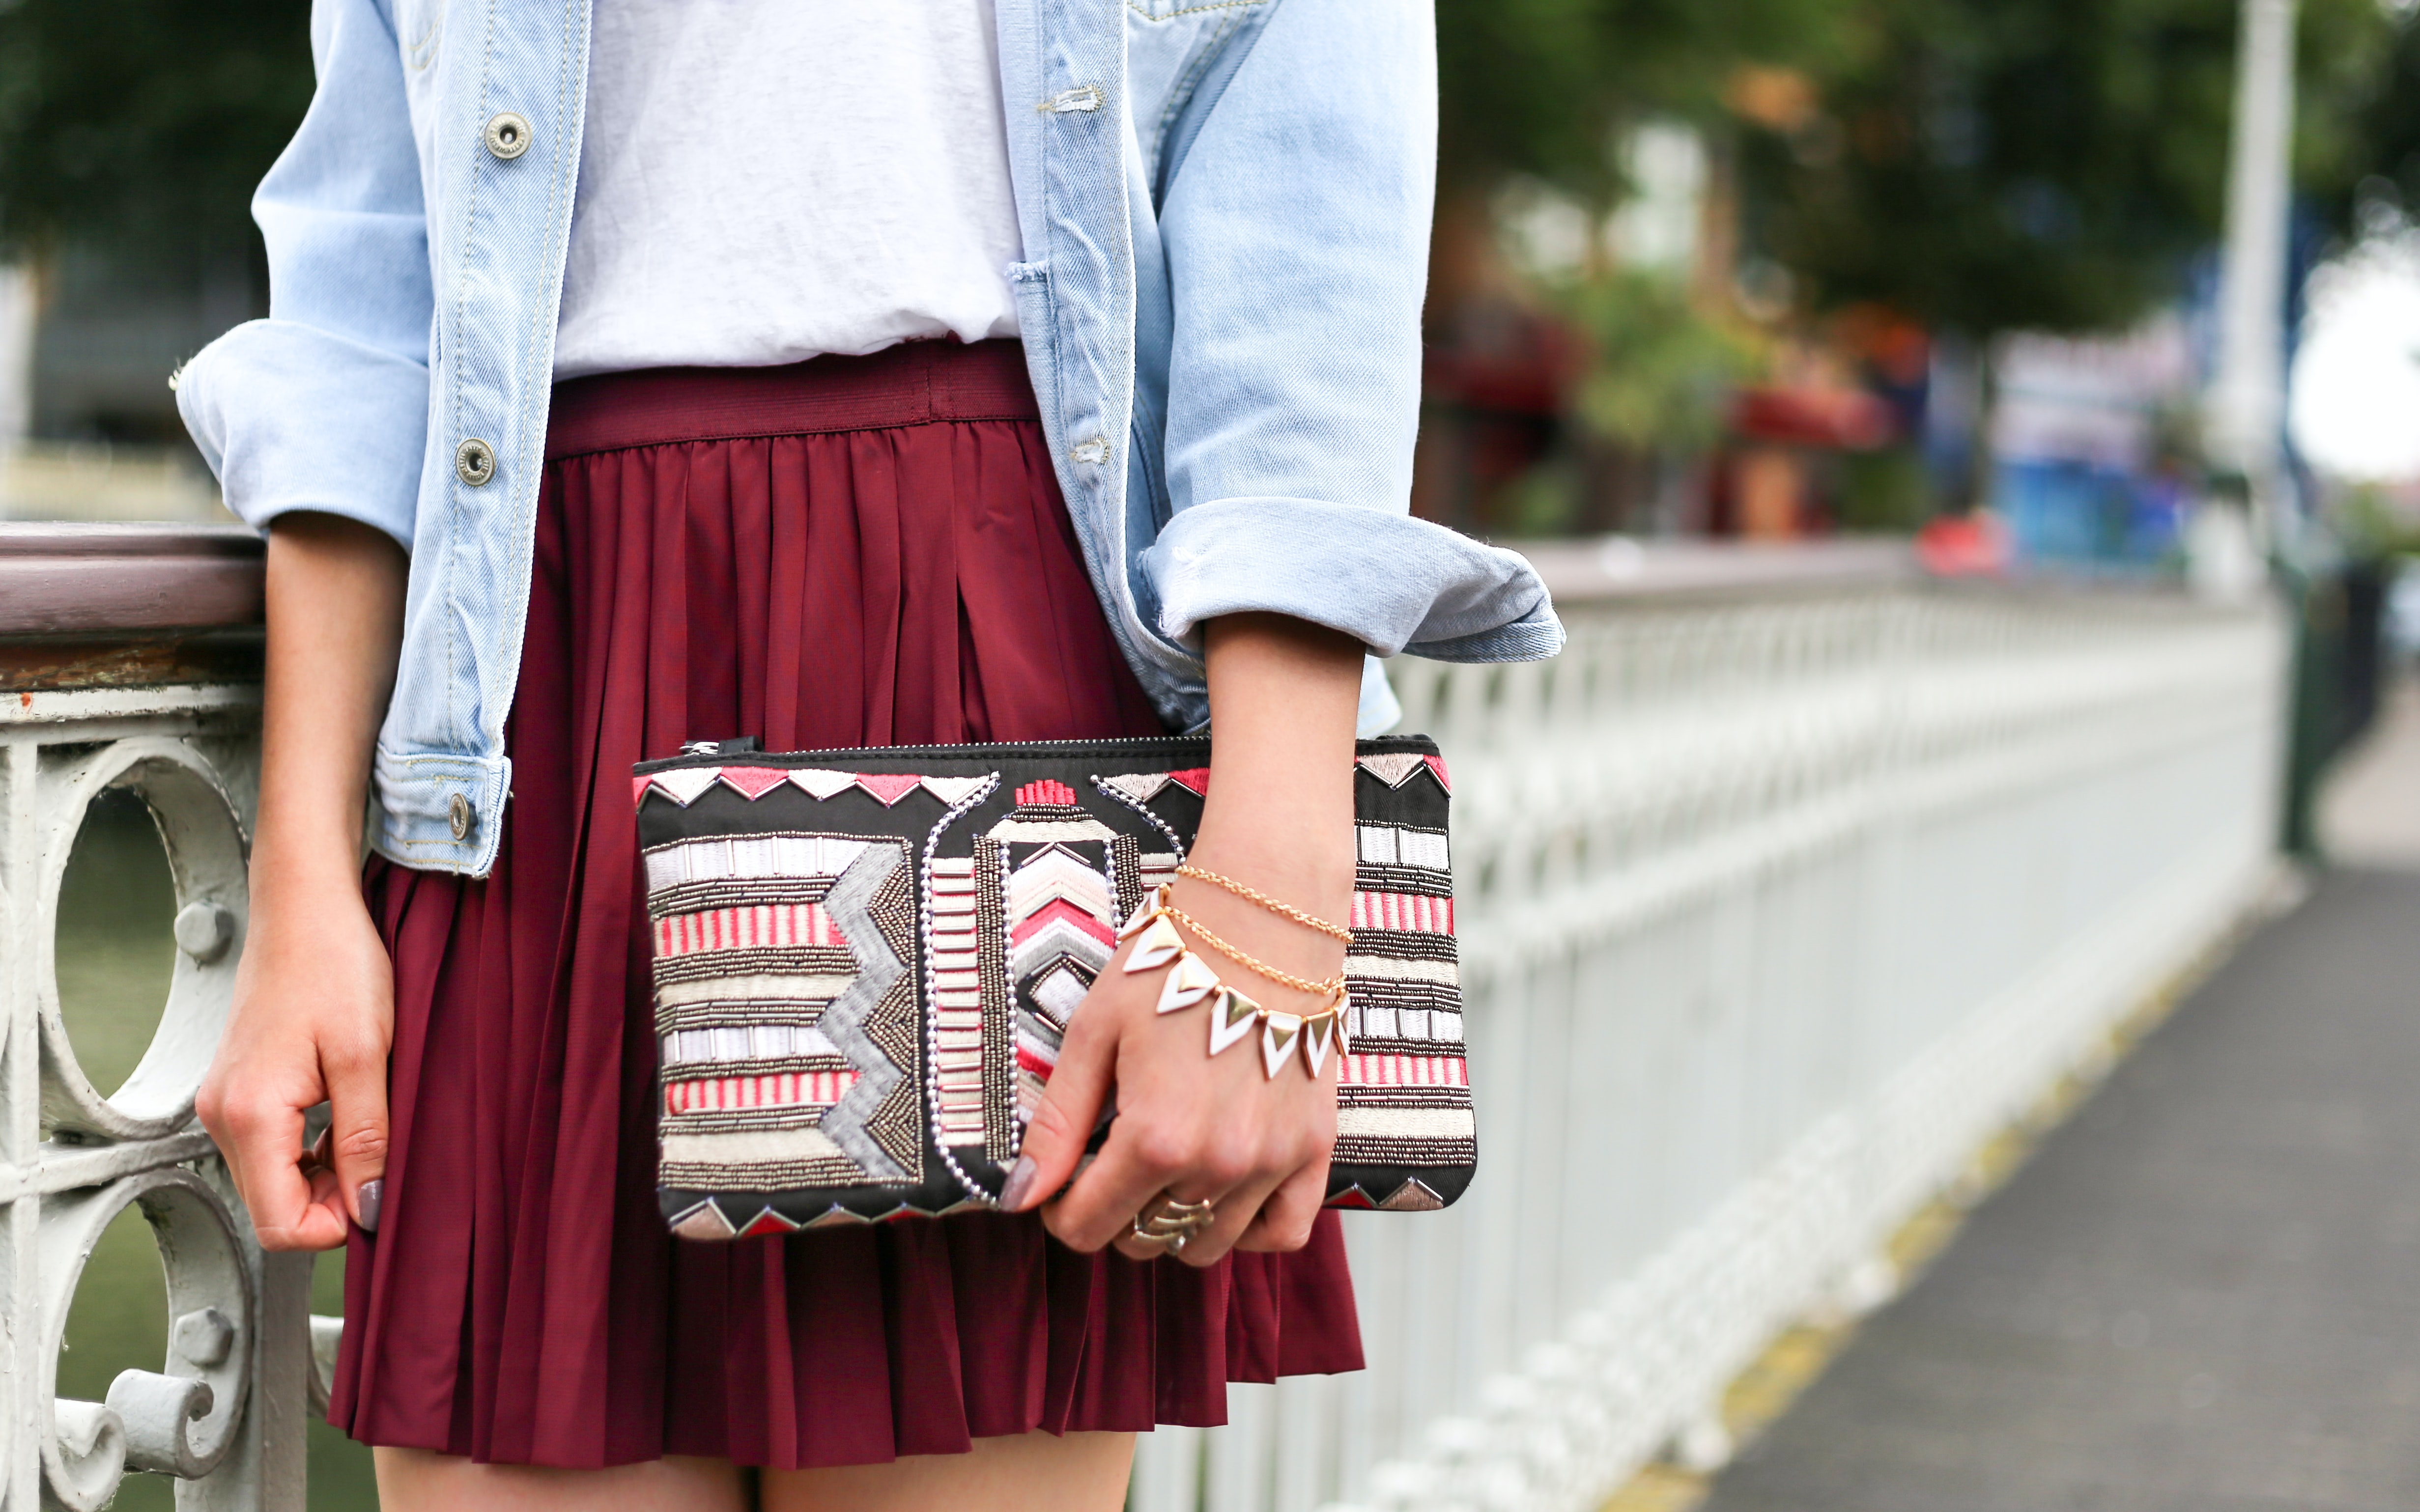 A woman in a red skirt, jean shirt, and jewelry holds a patterned clutch in Rotterdam